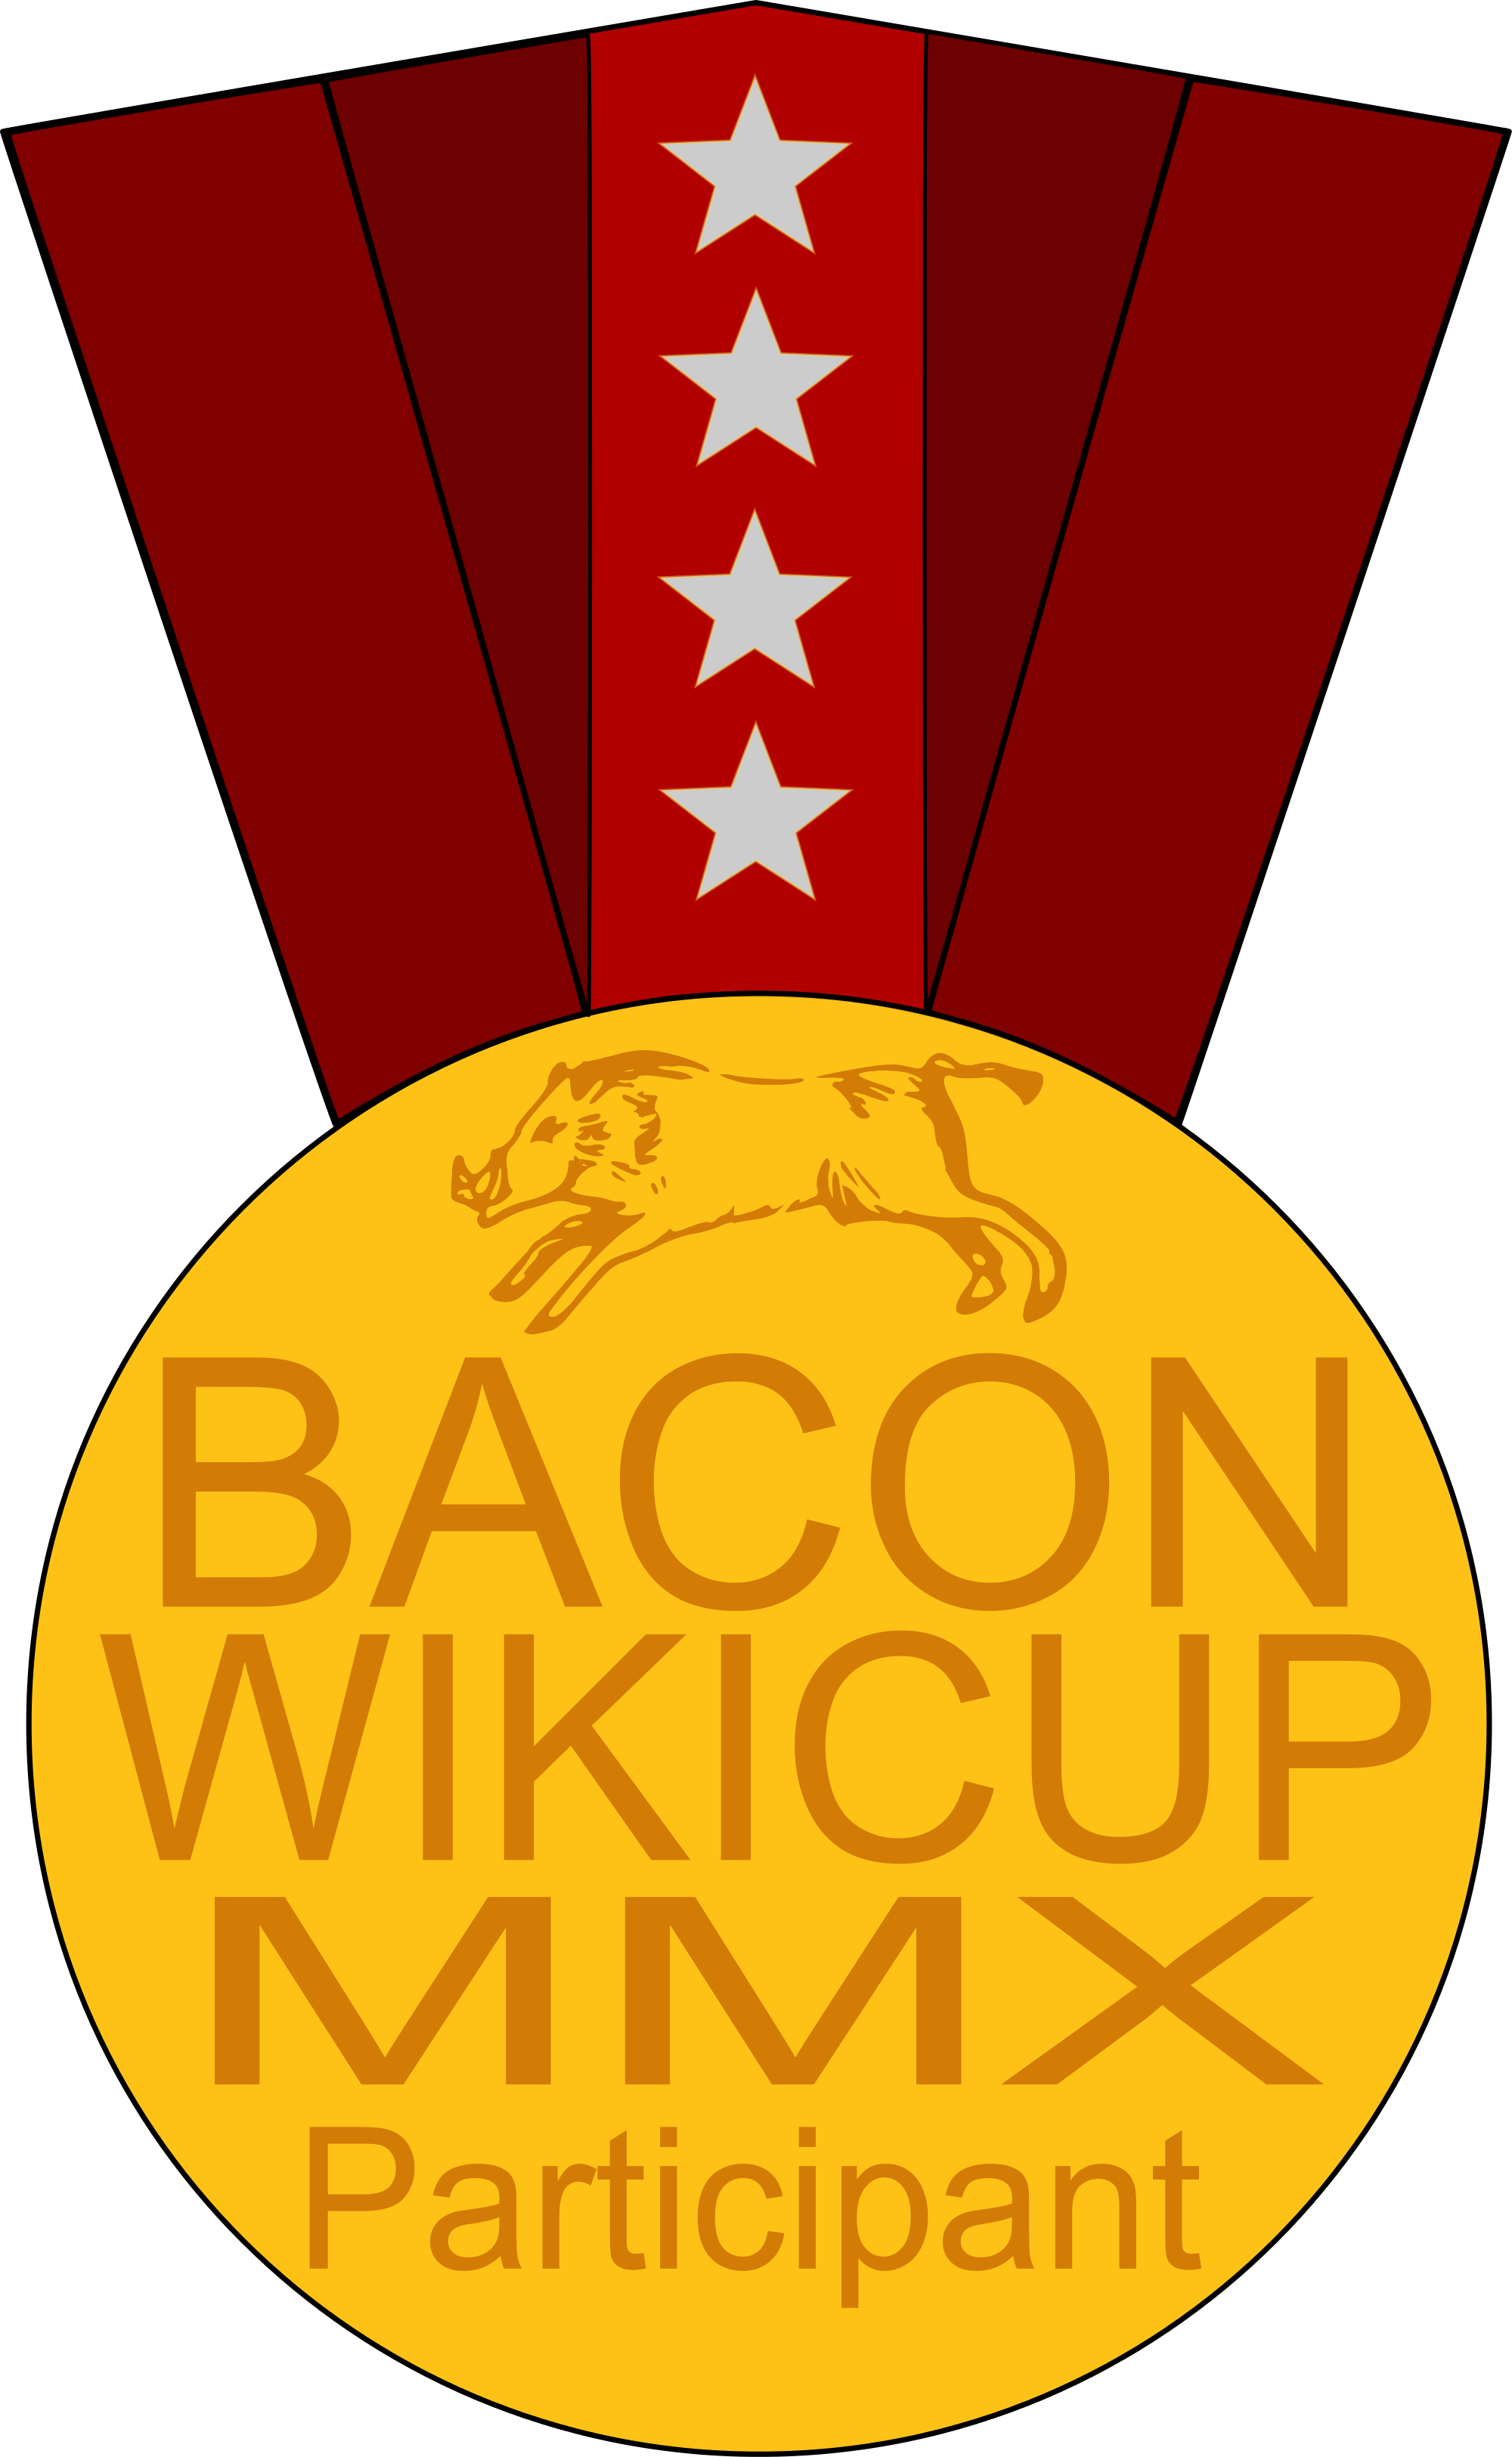 Bacon clipart svg. File wikicup medal wikimedia